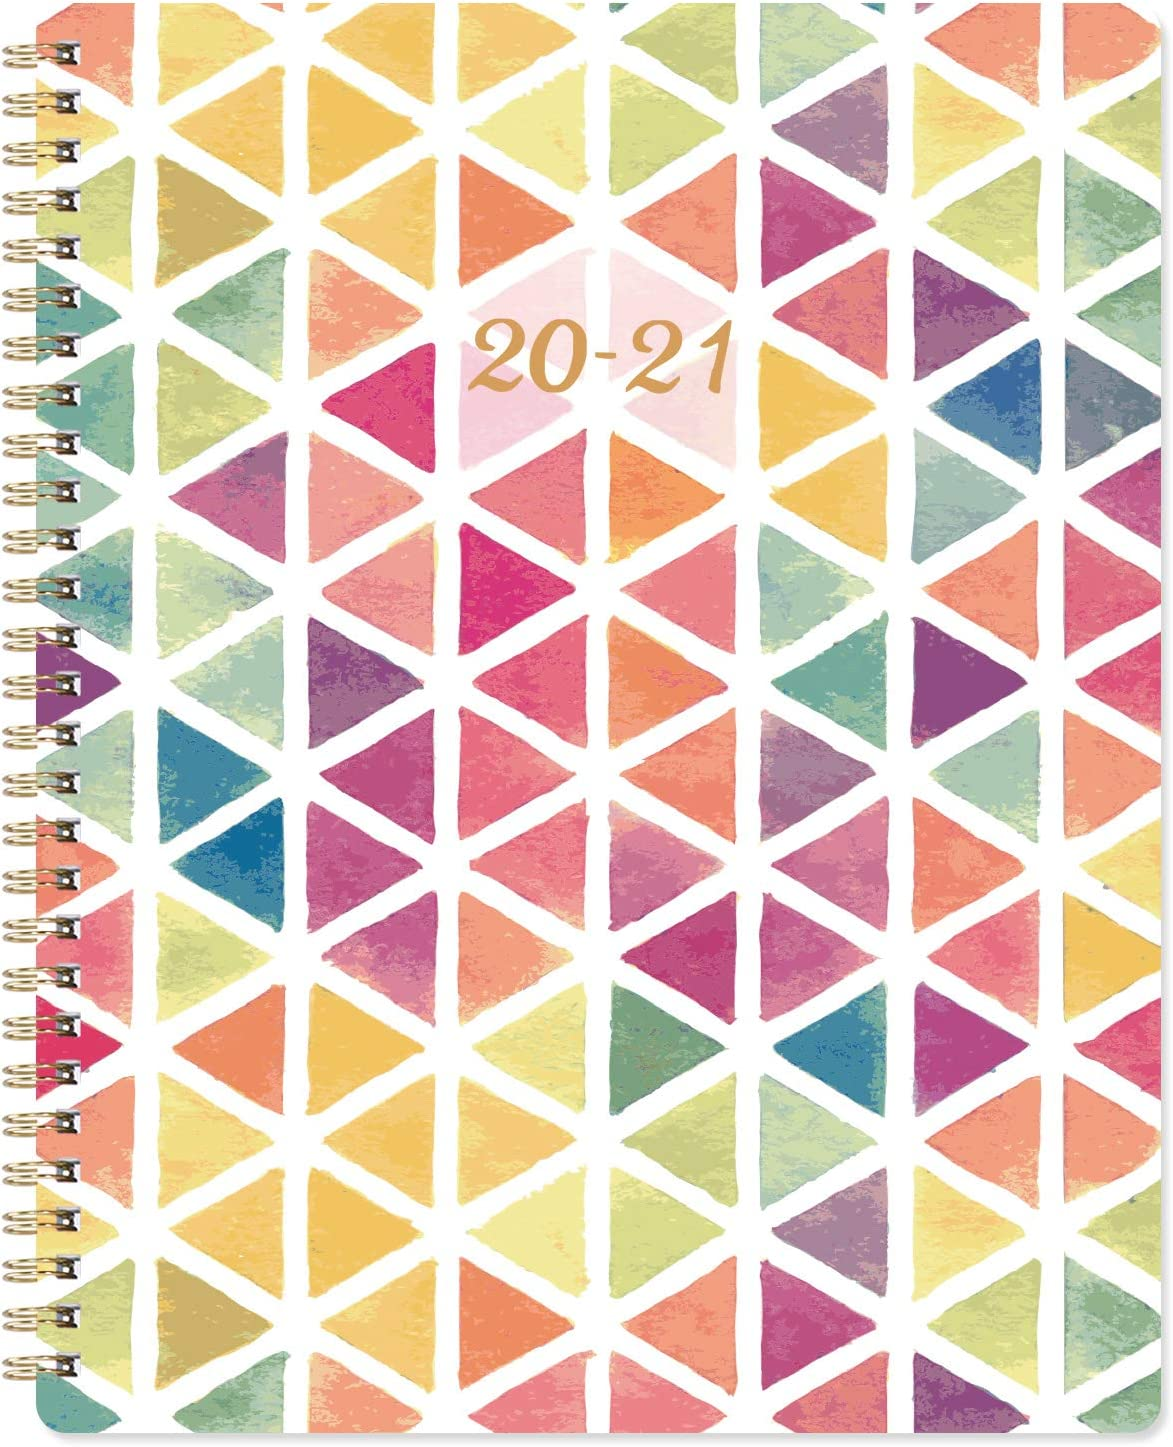 """2020-2021 Planner - Academic Weekly & Monthly Planner with Marked Tabs, 8"""" x 9.7"""", Thick Paper + Contacts + Calendar + Holidays, July 2020 - June 2021, Twin-Wire Binding - Watercolor Triangle"""